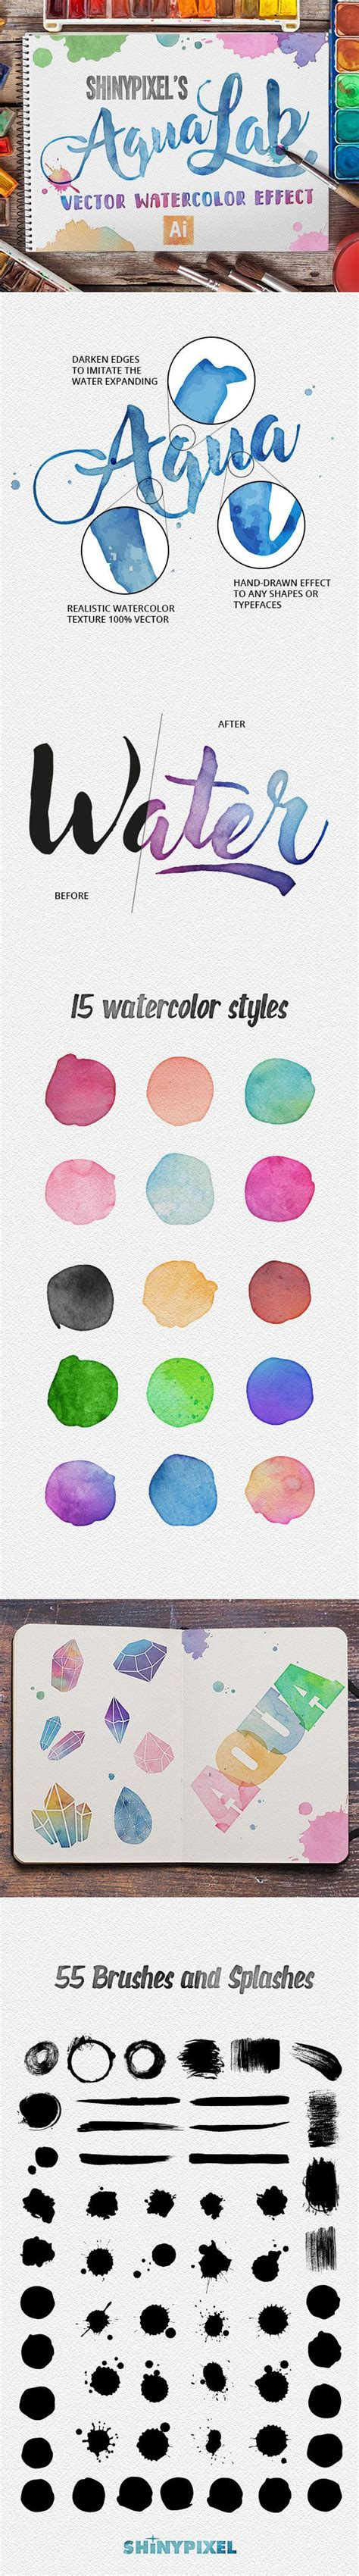 illustrator tutorial watercolor effect 251 best images about illustrator add ons on pinterest